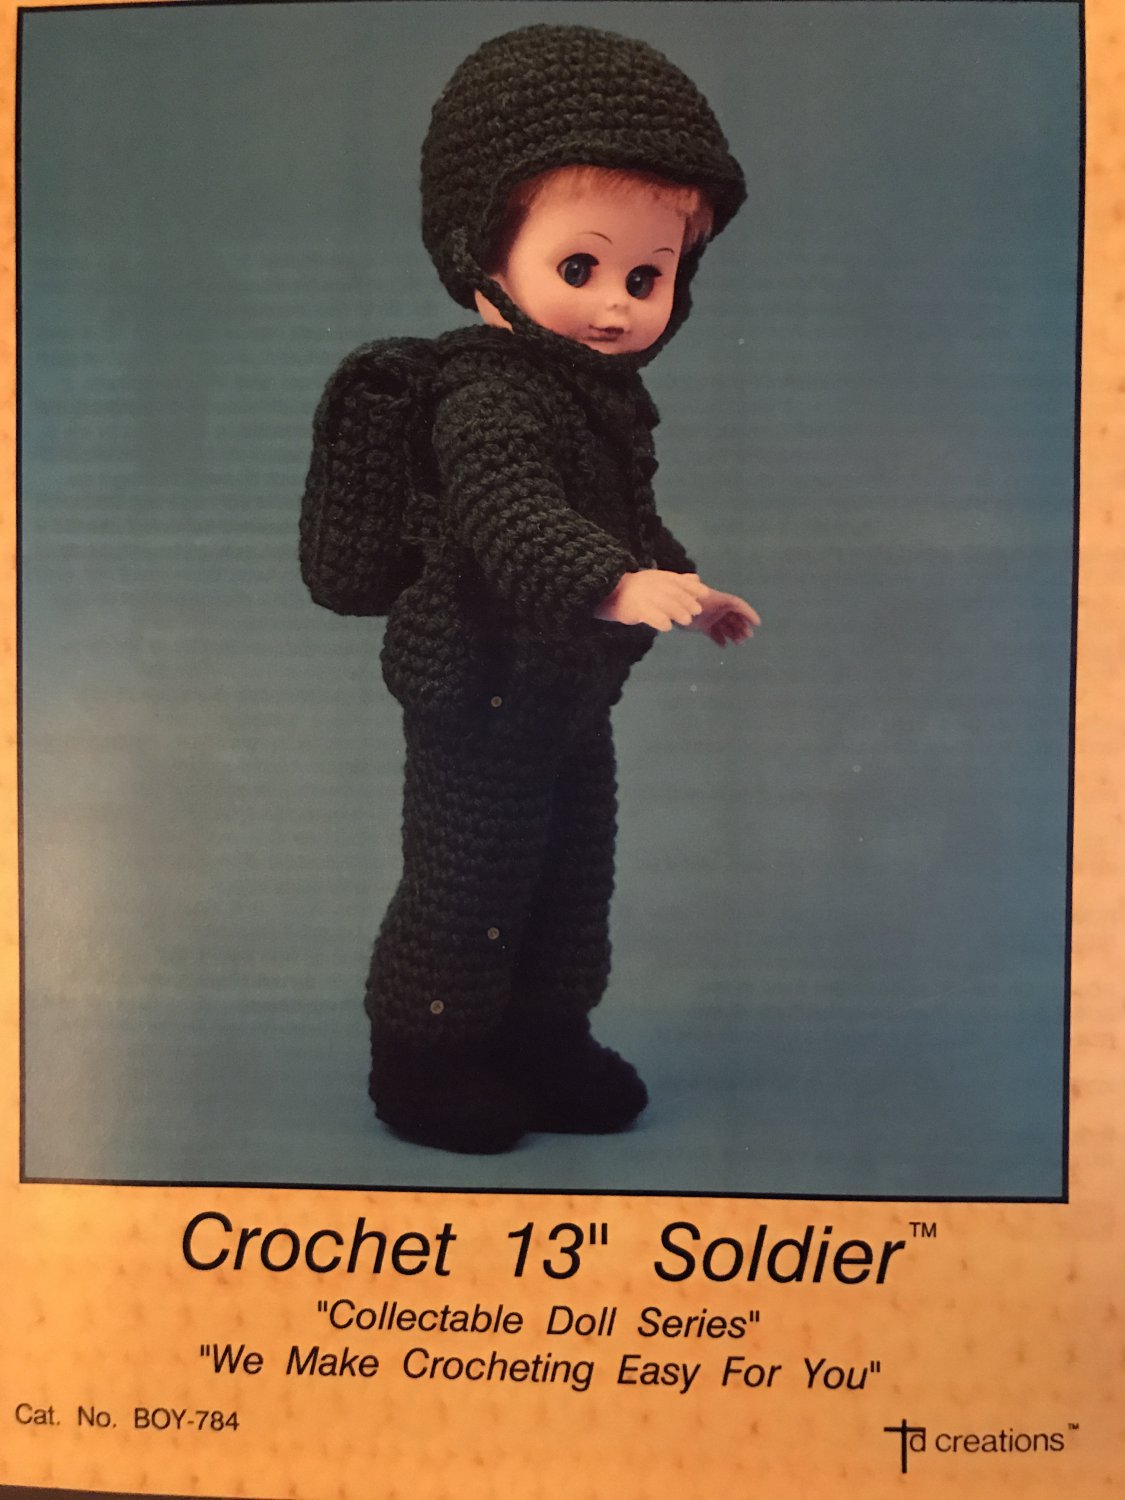 """Crochet Soldier Outfit for 13"""" doll TD creations Pattern Boy-784"""